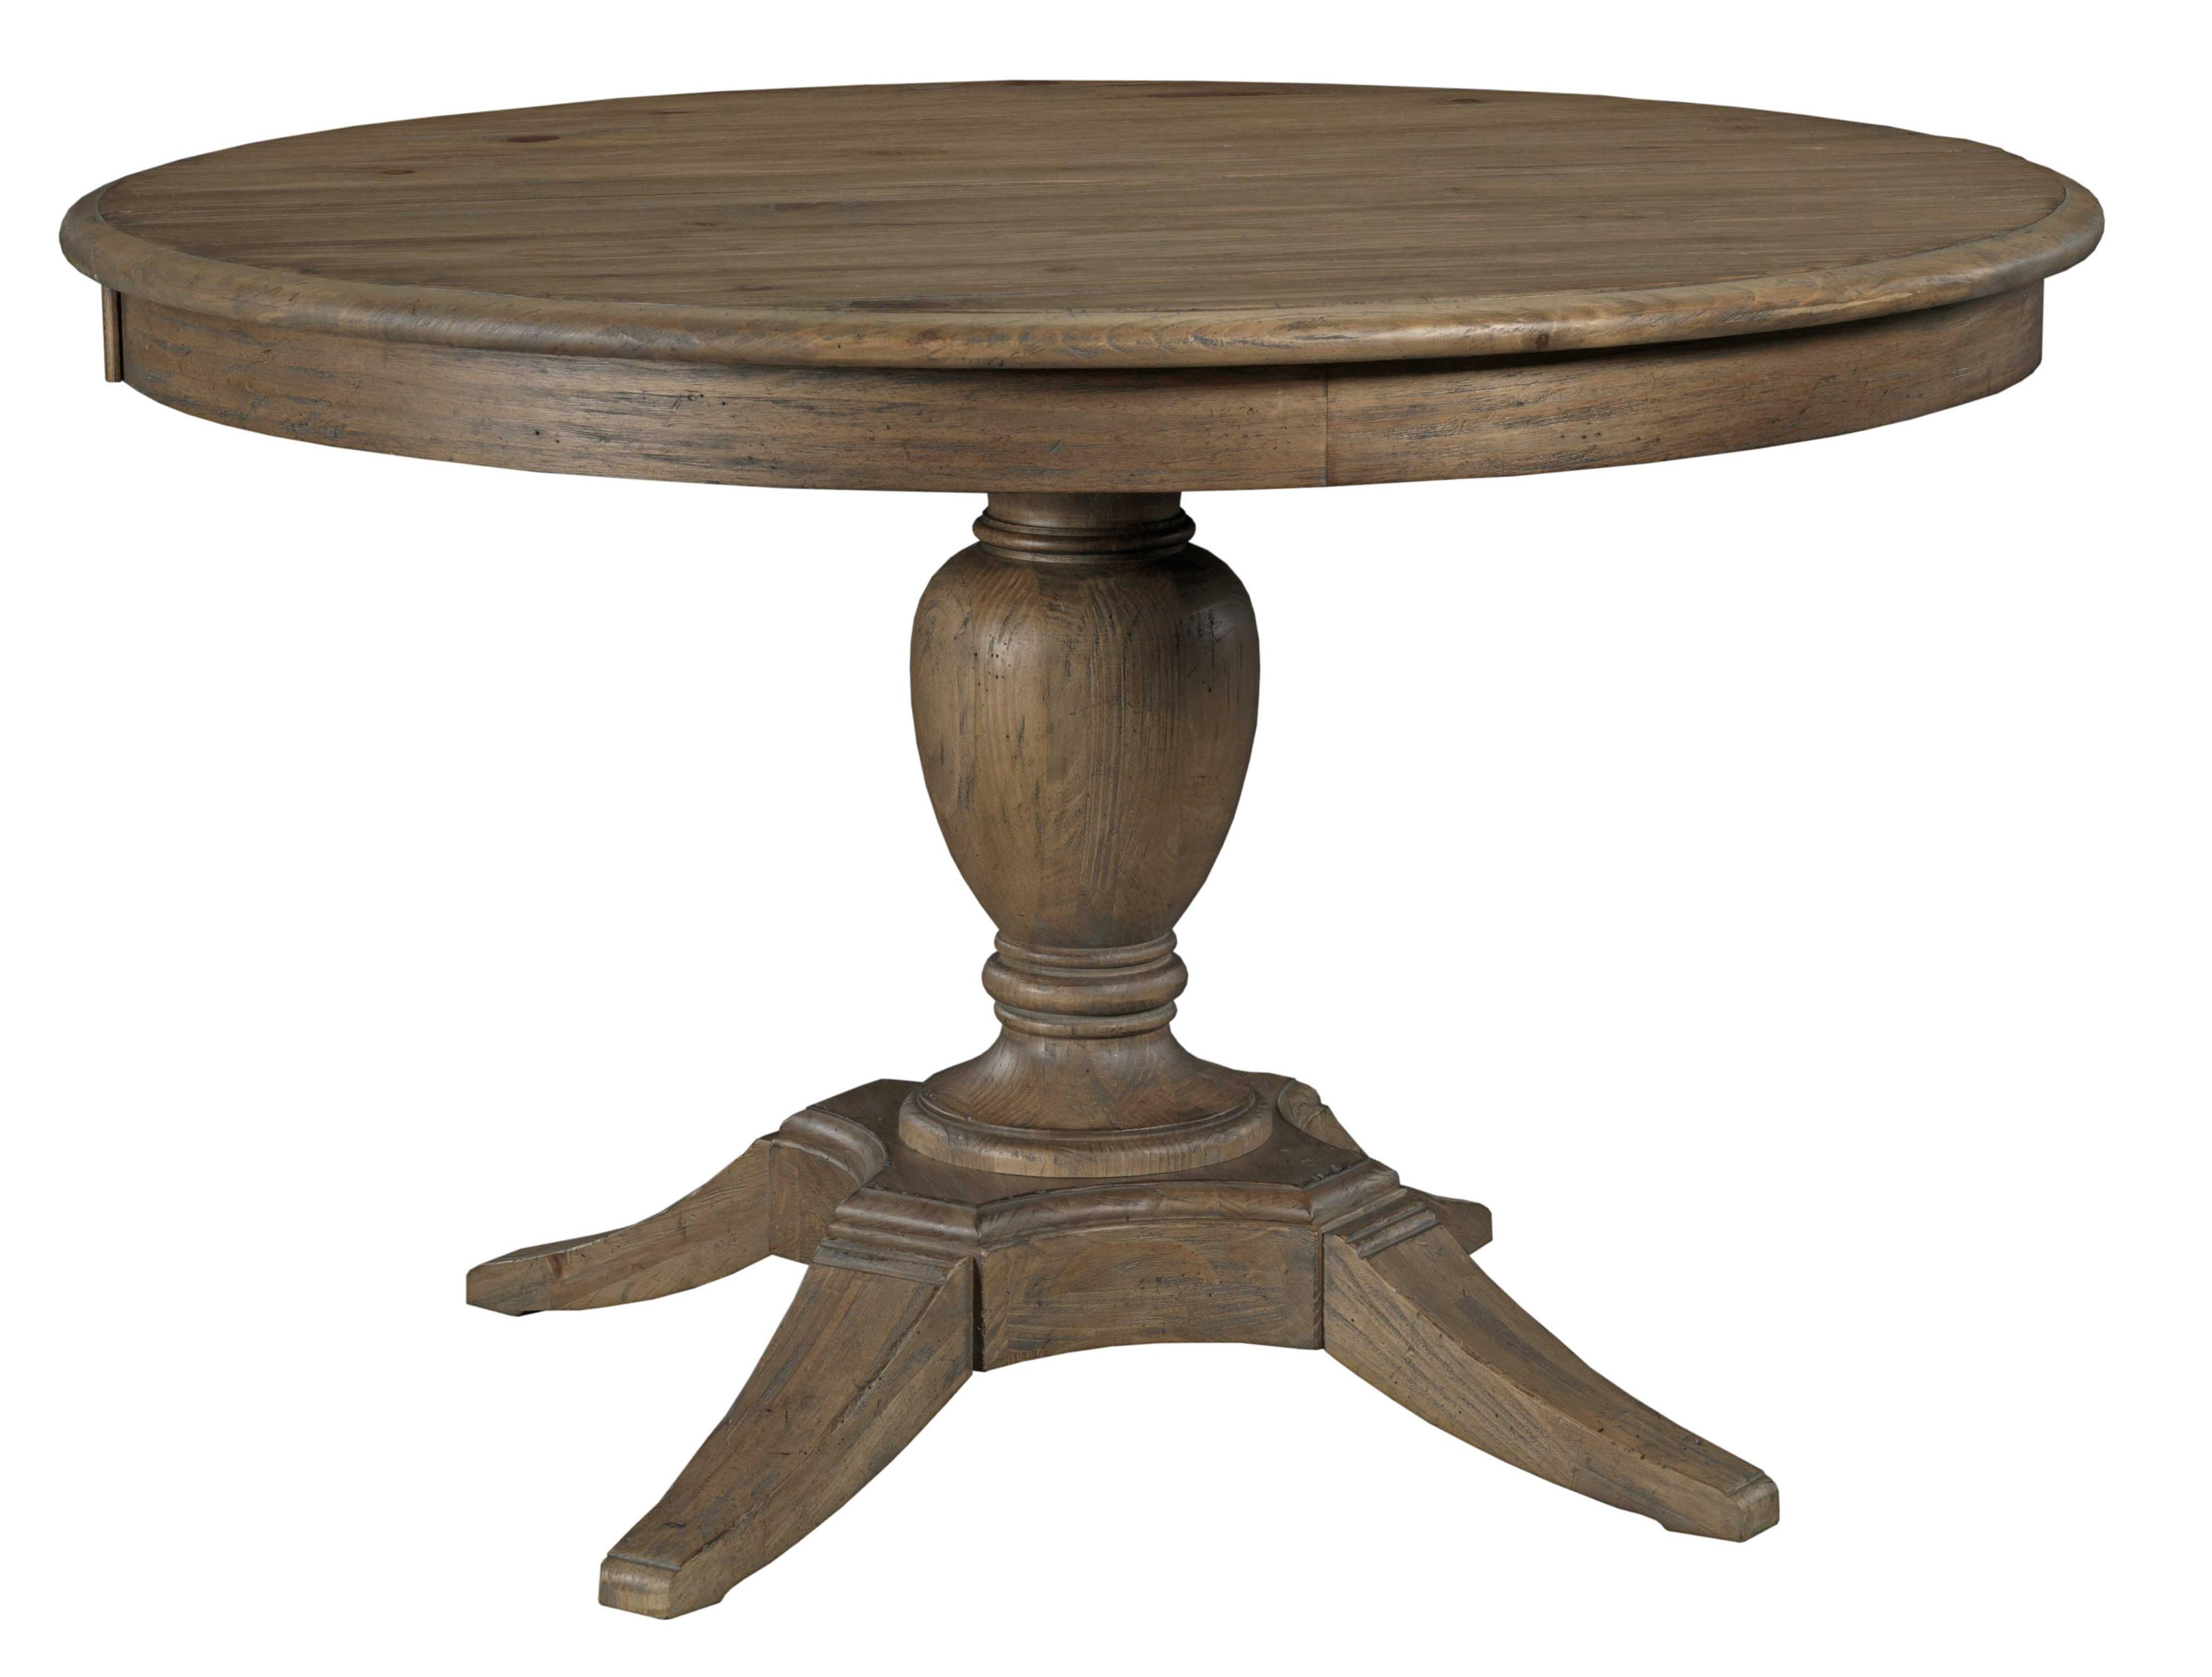 Milford Round Dining Table Package With Pedestal Base And Splayed Legs